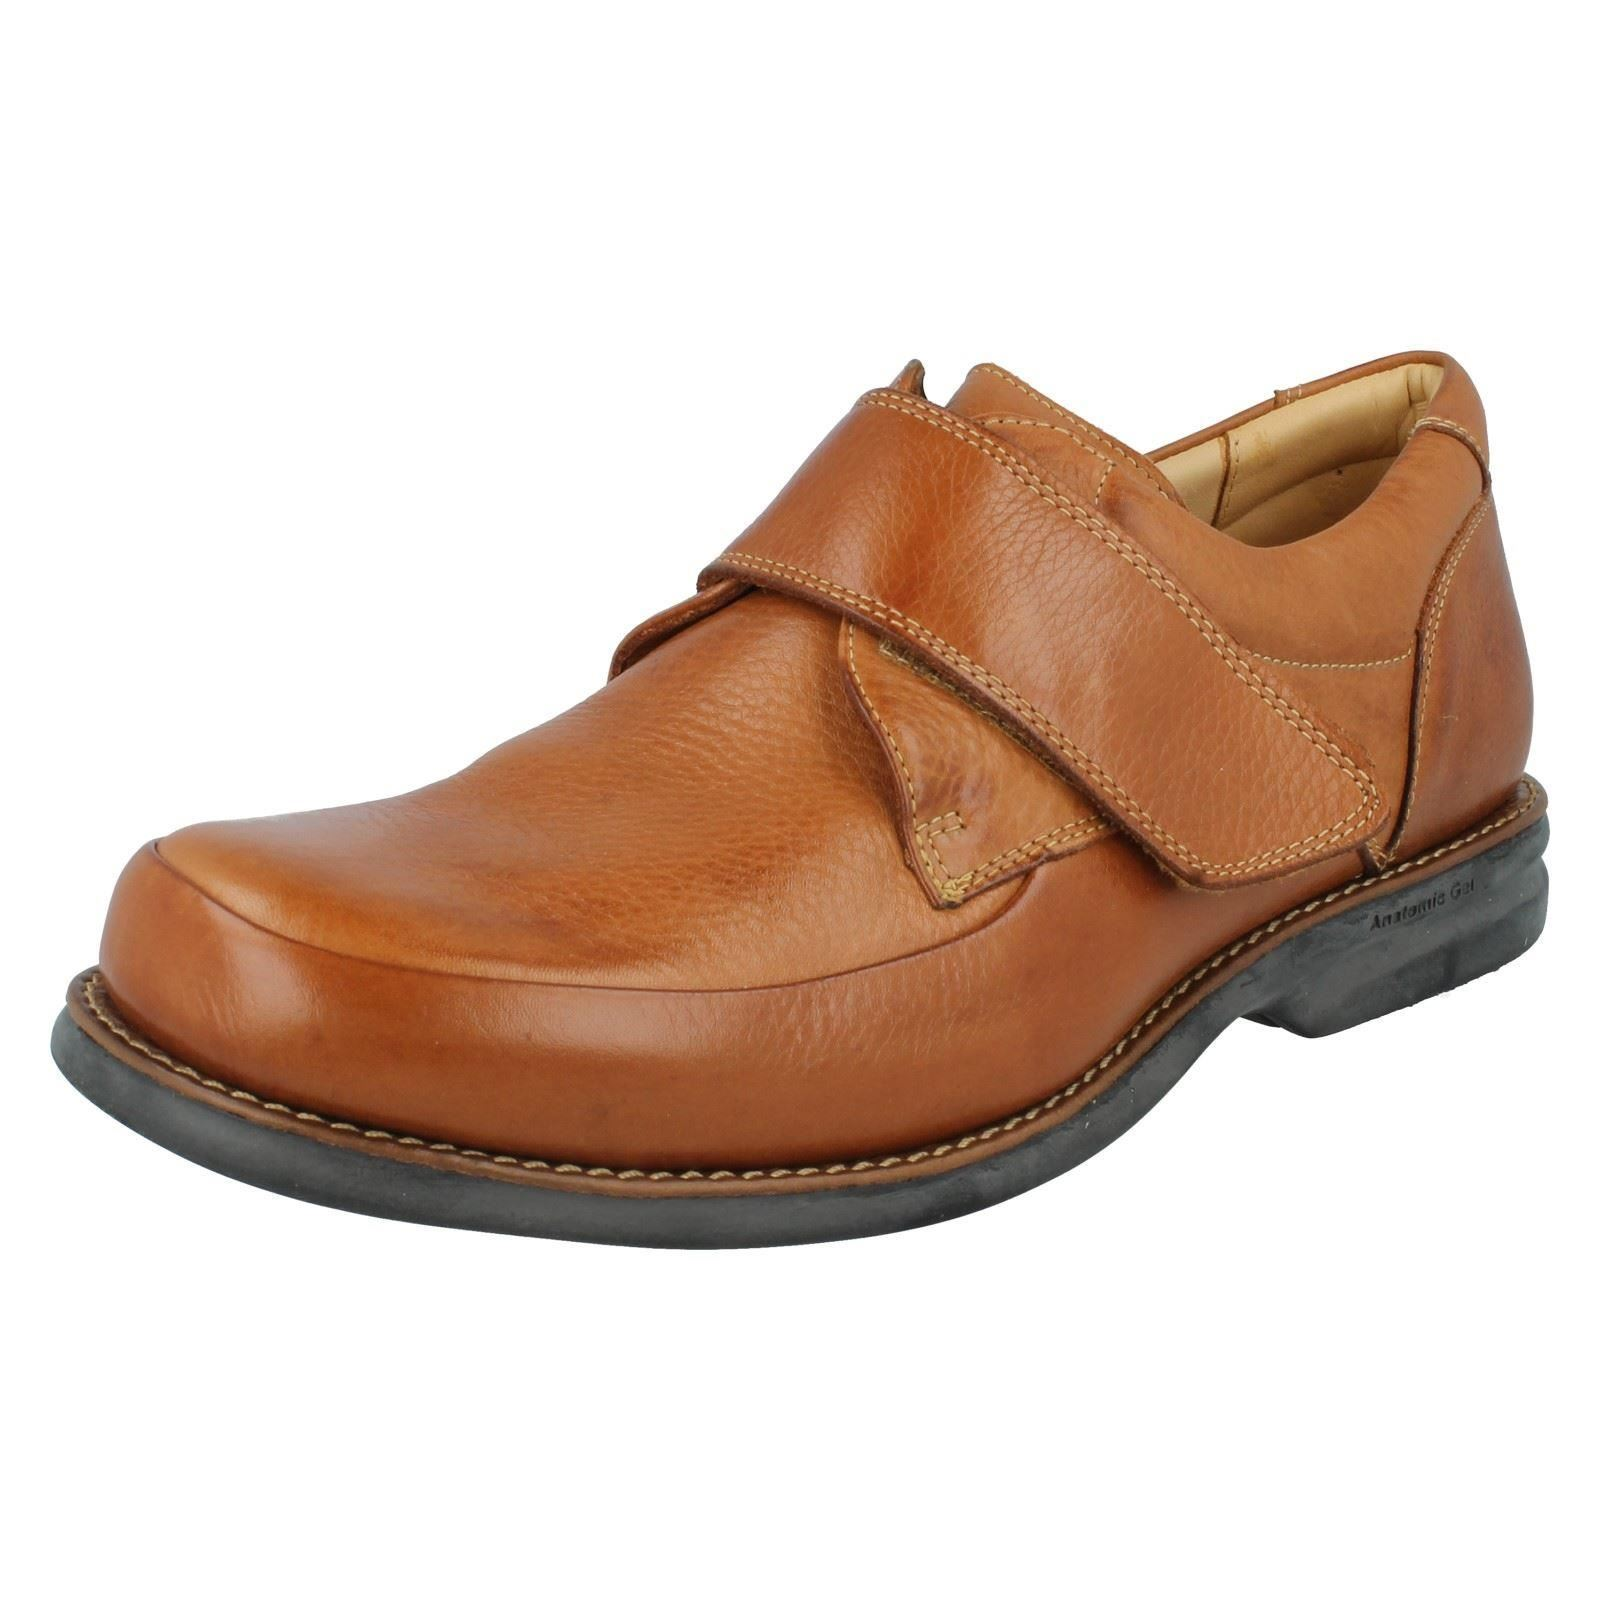 Anatomic & Schuhes Co Tapajos Formal Leder Schuhes & 299042